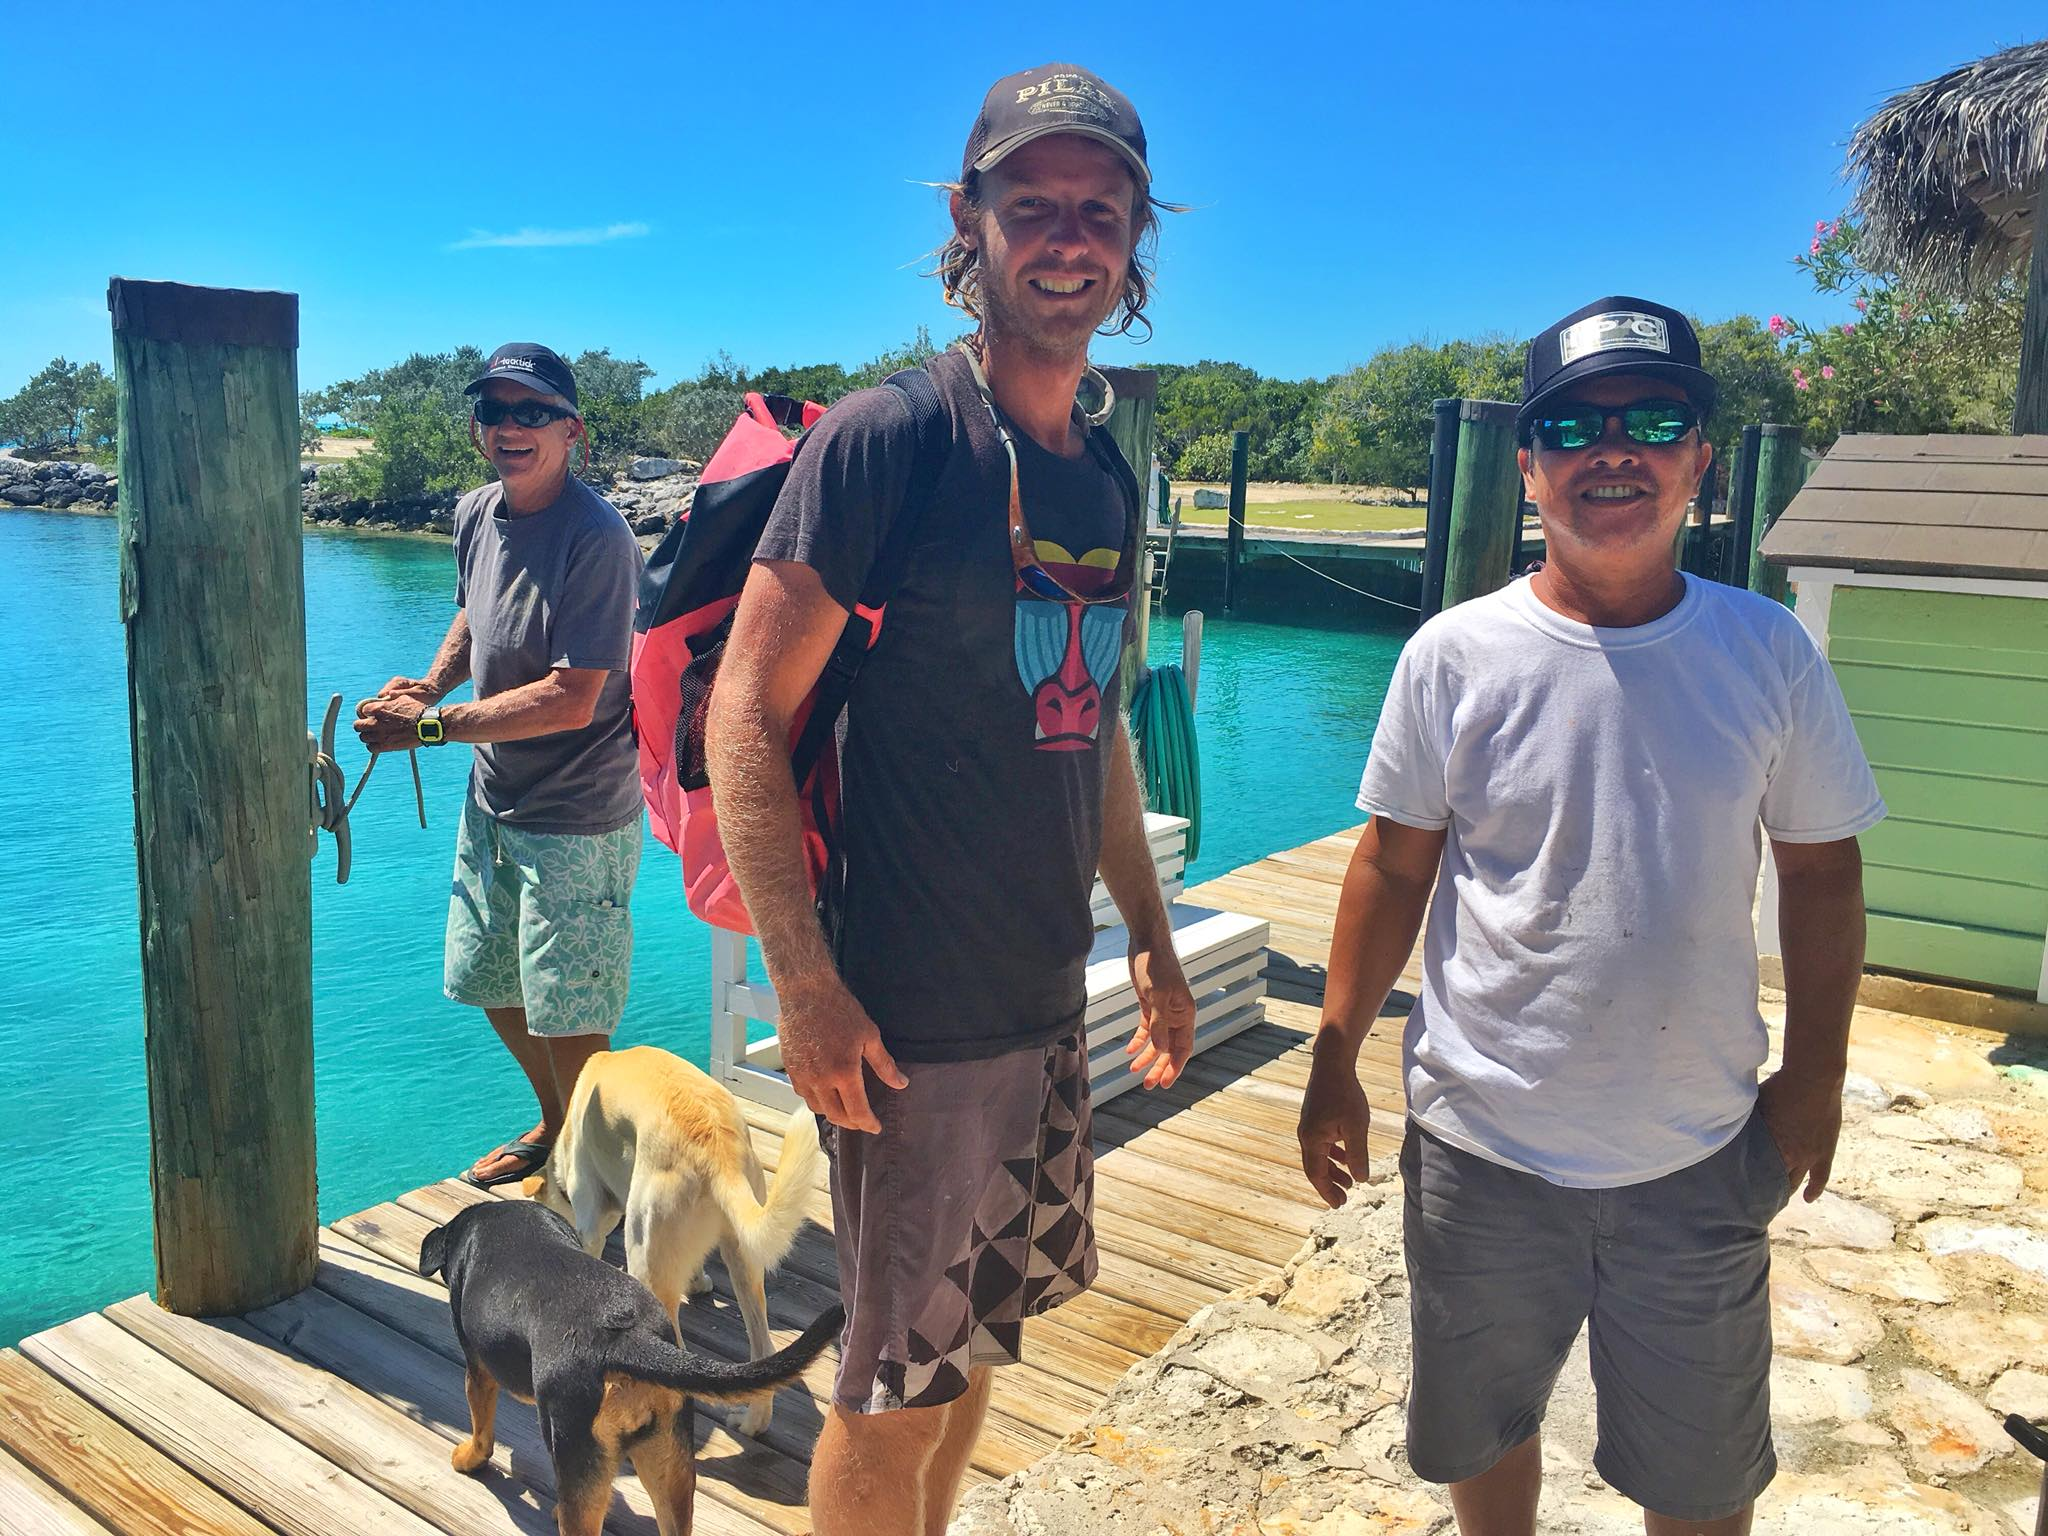 Sailing Life Day 23 - Visiting our new Pinoy Friends on their Private Island & Spearfishing today in the Exumas, Bahamas🐟